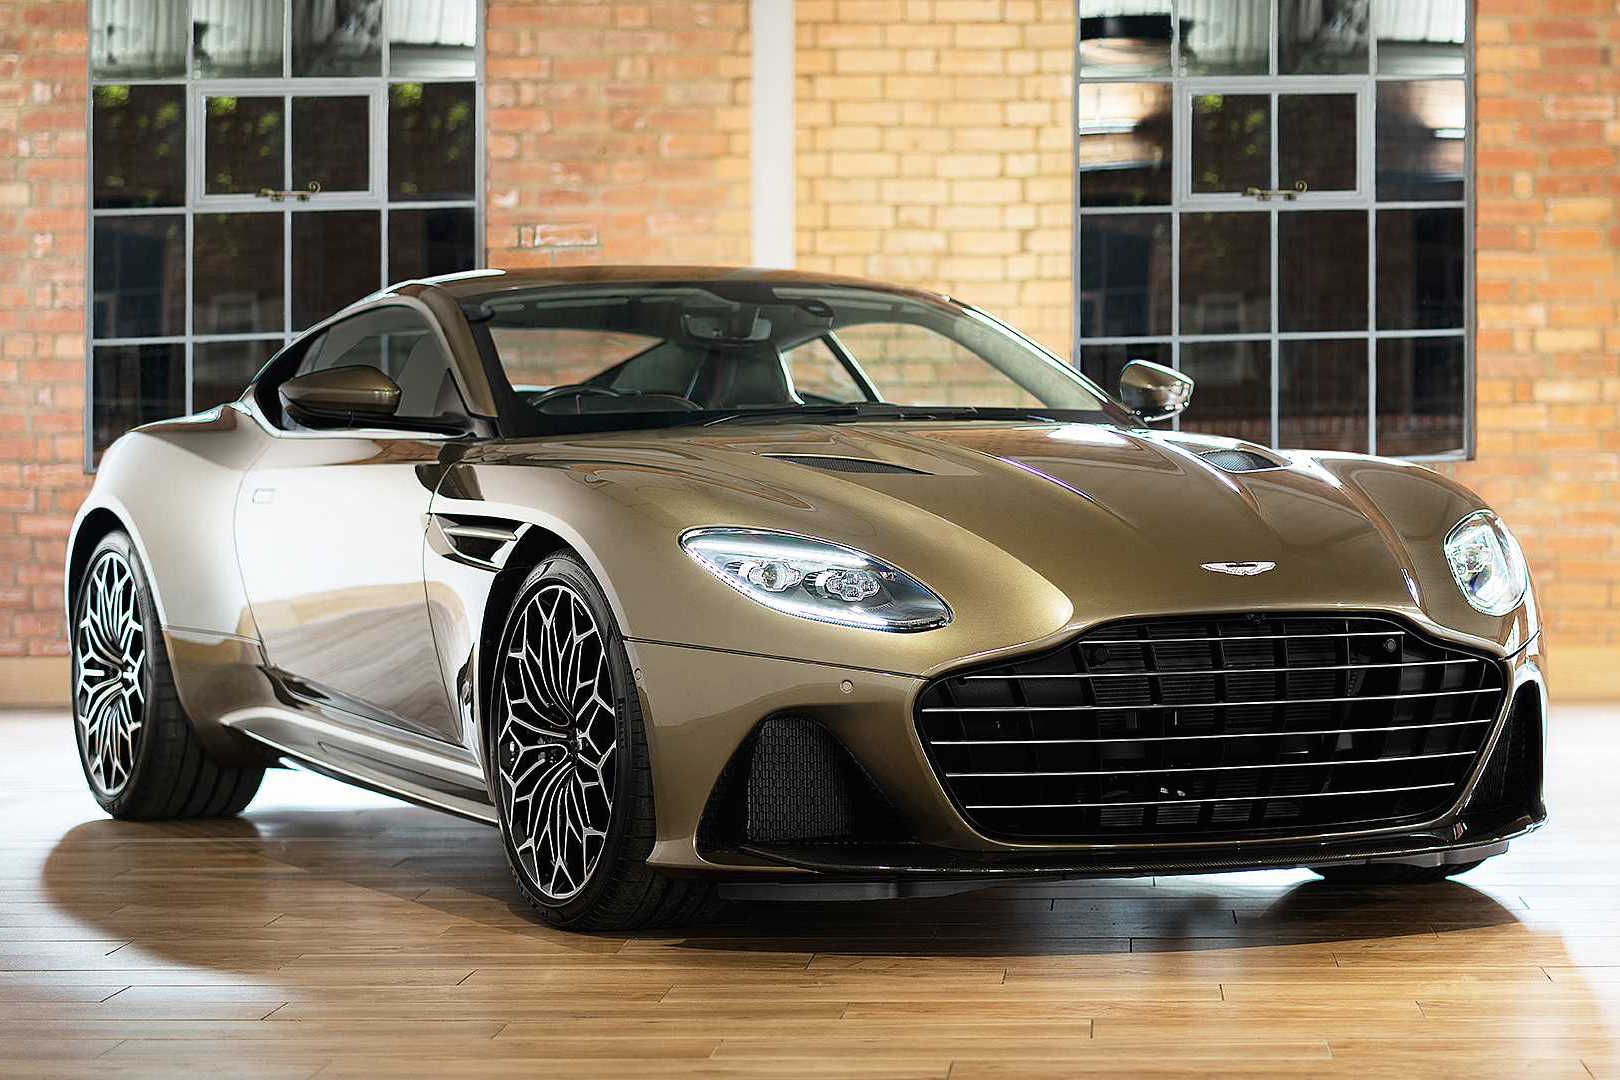 James Bond DBS Superleggeras 007